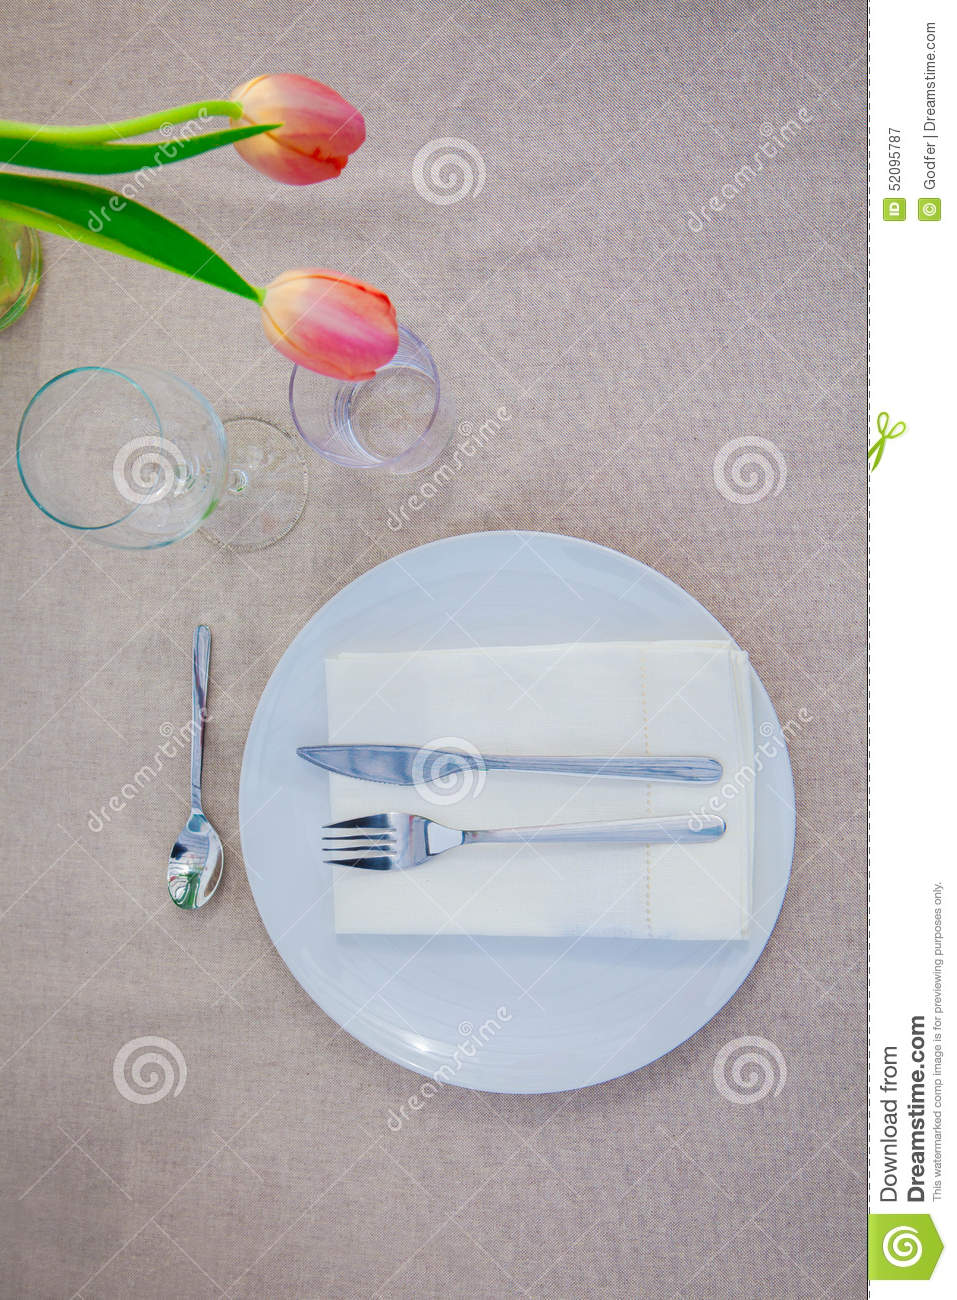 medium resolution of simple meal table setting